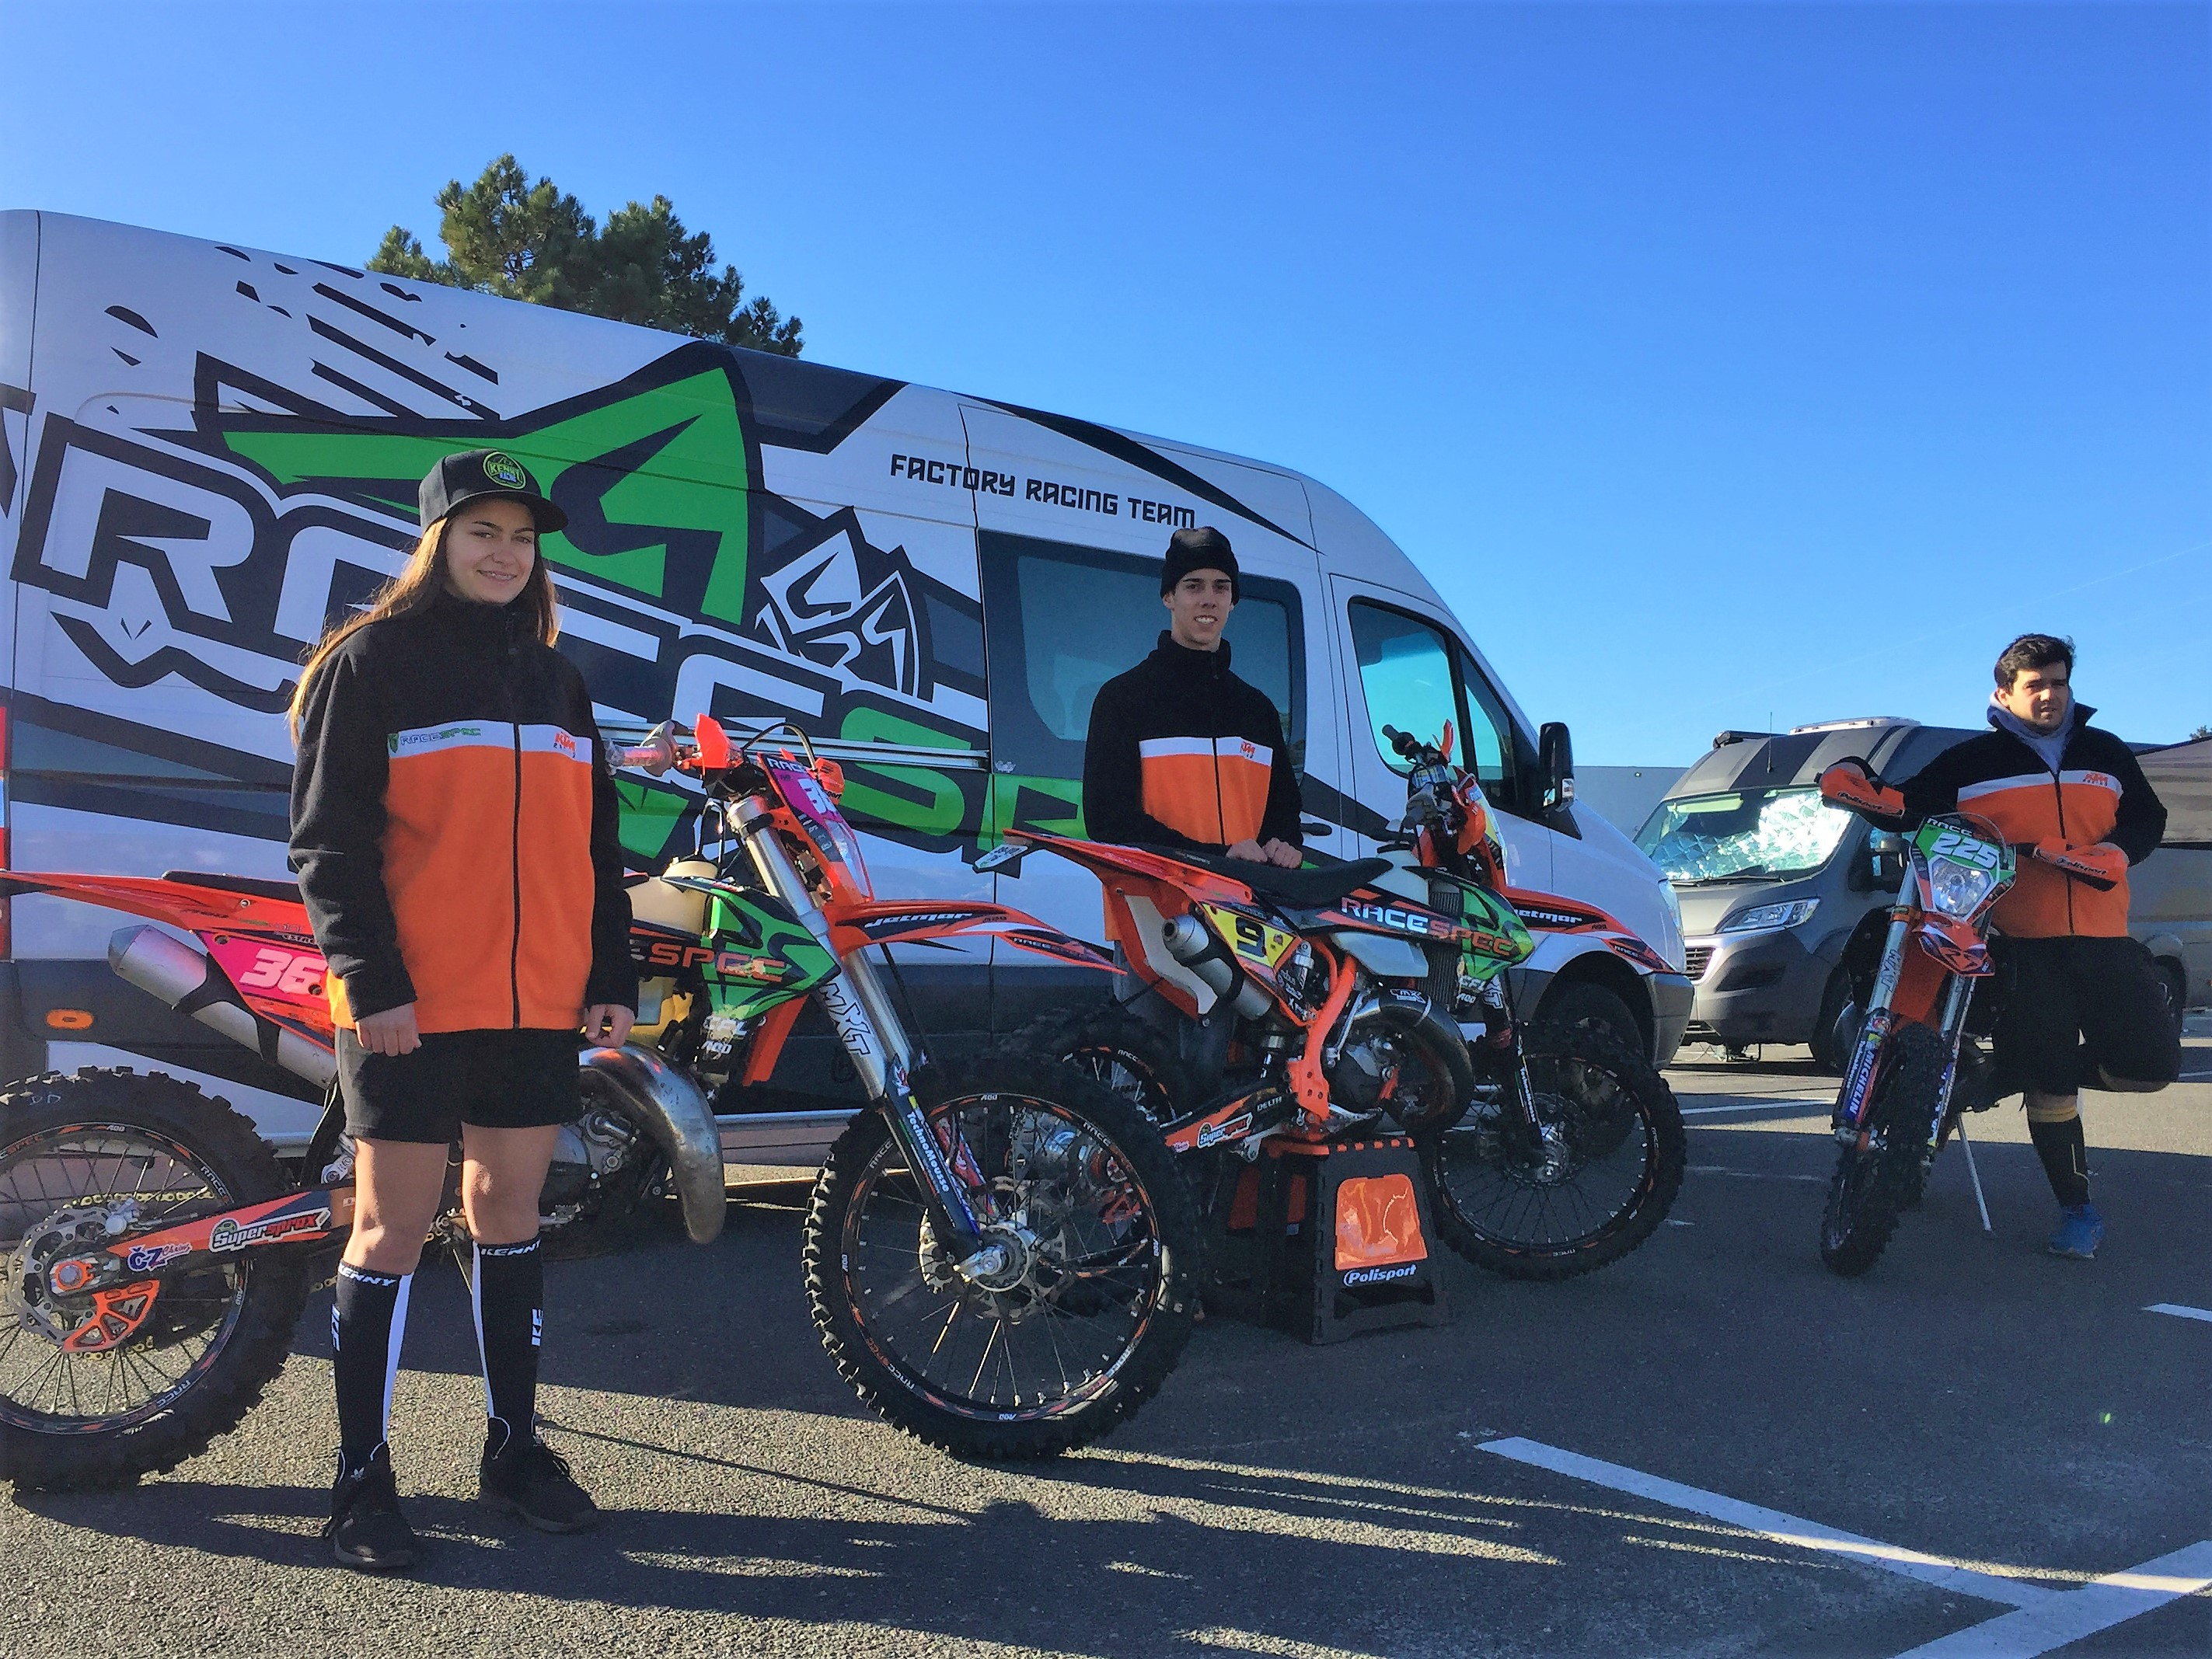 RACESPEC|KTM|CFL no arranque do Campeonato Nacional de Enduro 2018